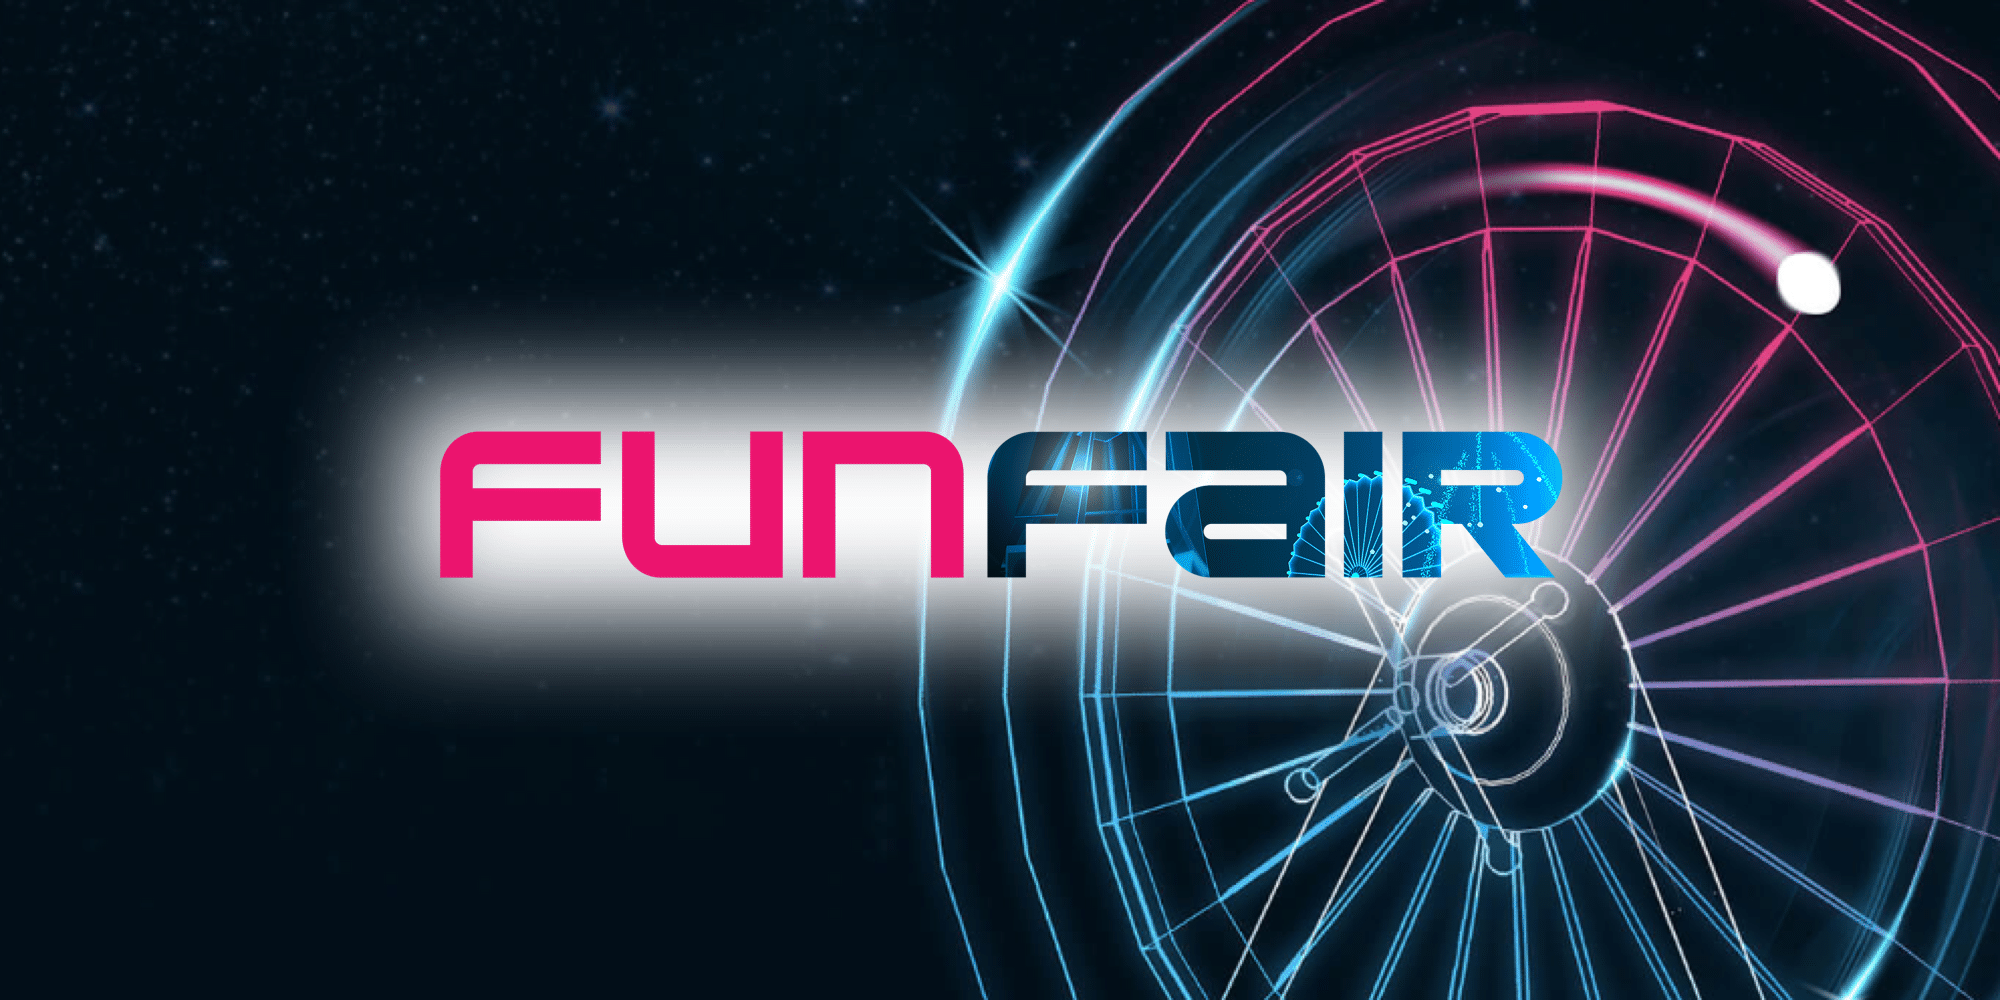 Can i bet real crypto on fun fair yet bettingexpert blog del